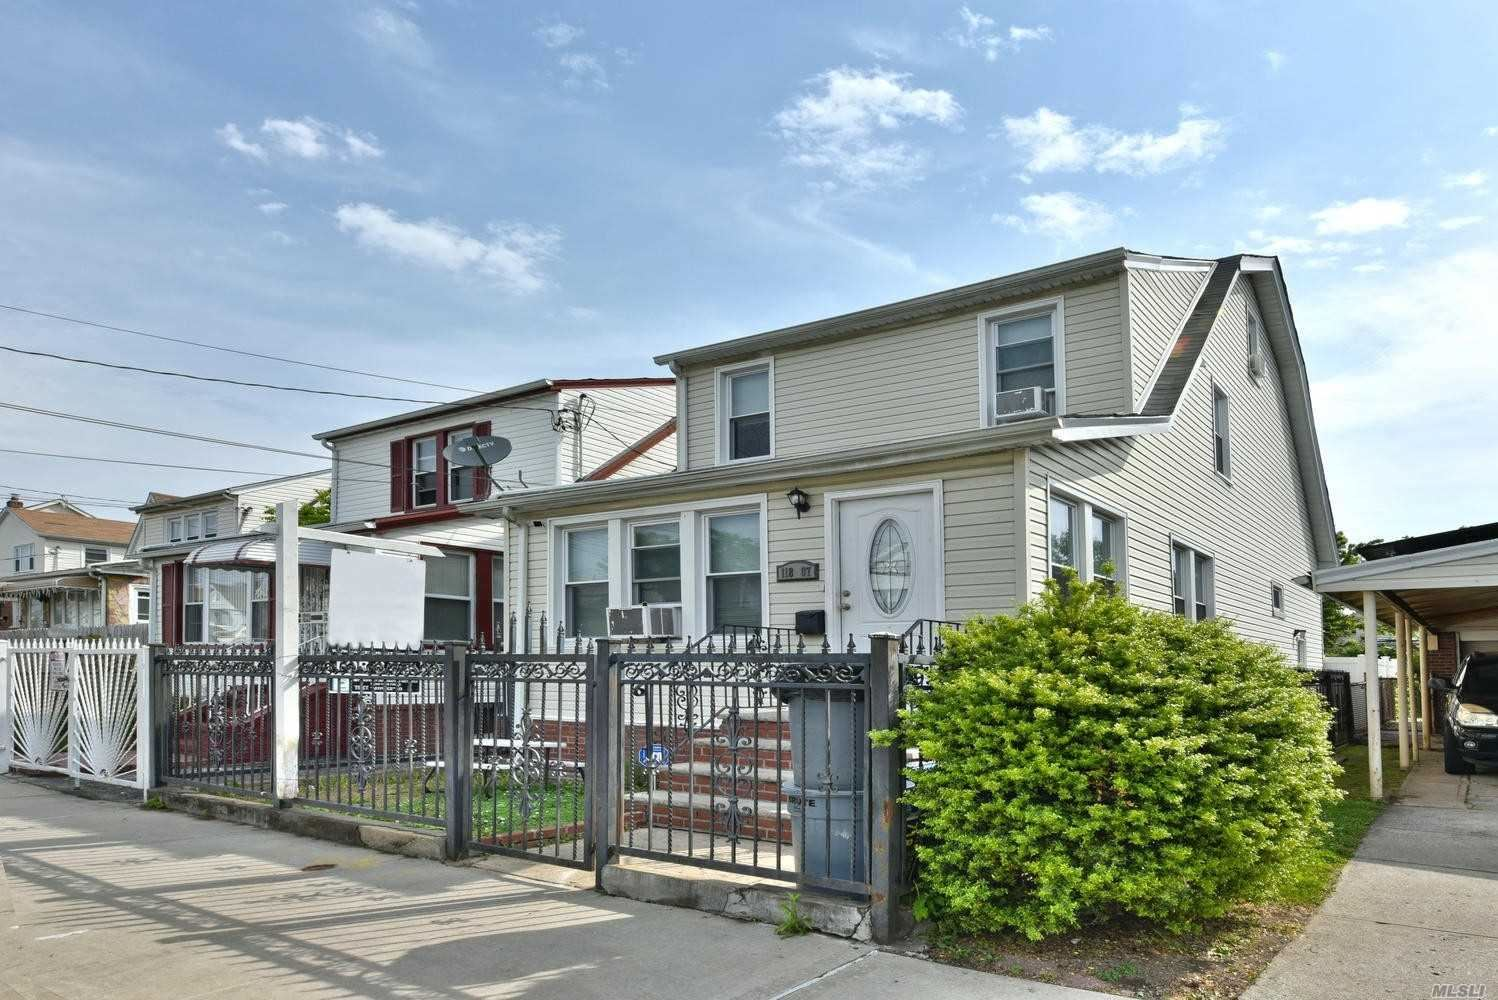 118-07 196th St, St. Albans, NY 11412 - MLS#: 3213770